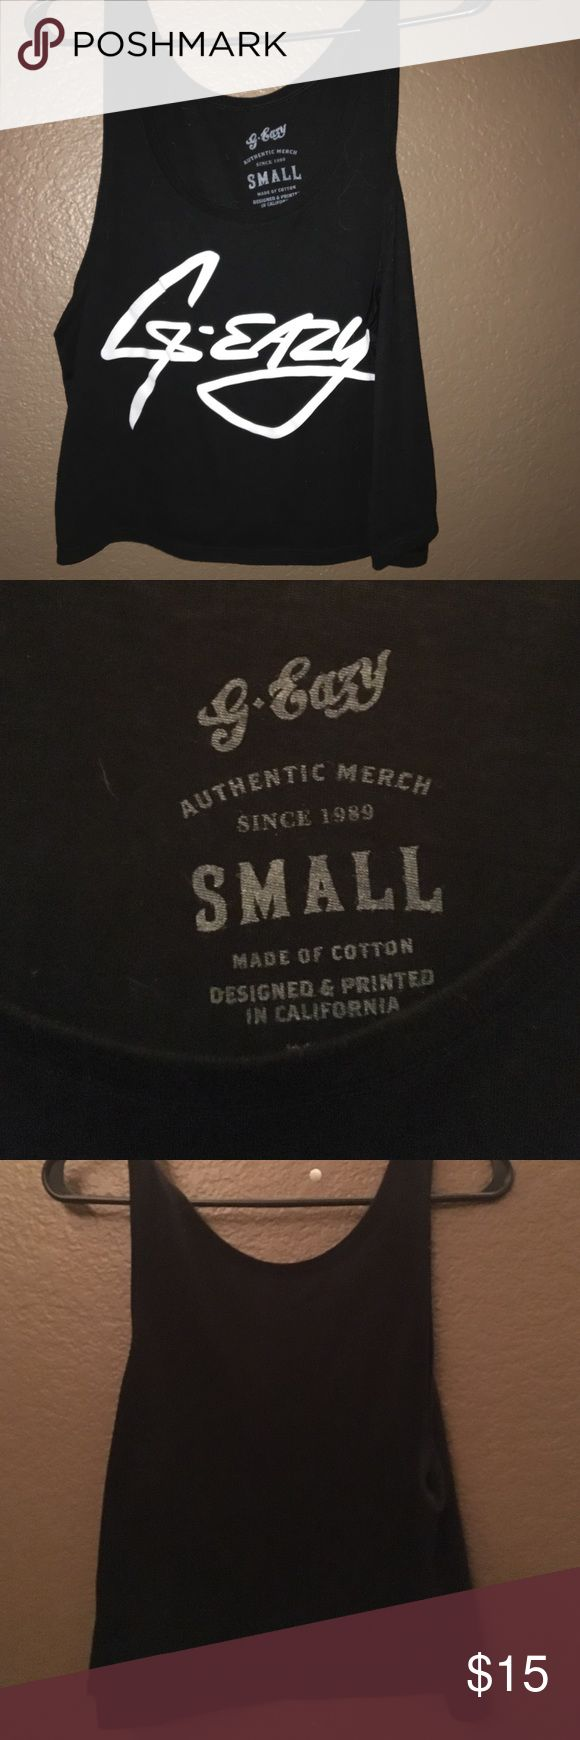 G-Eazy Black Crop Top Authentic merch from g-eazy store. Never worn. 100% cotton. G-Eazy Merch Tops Crop Tops